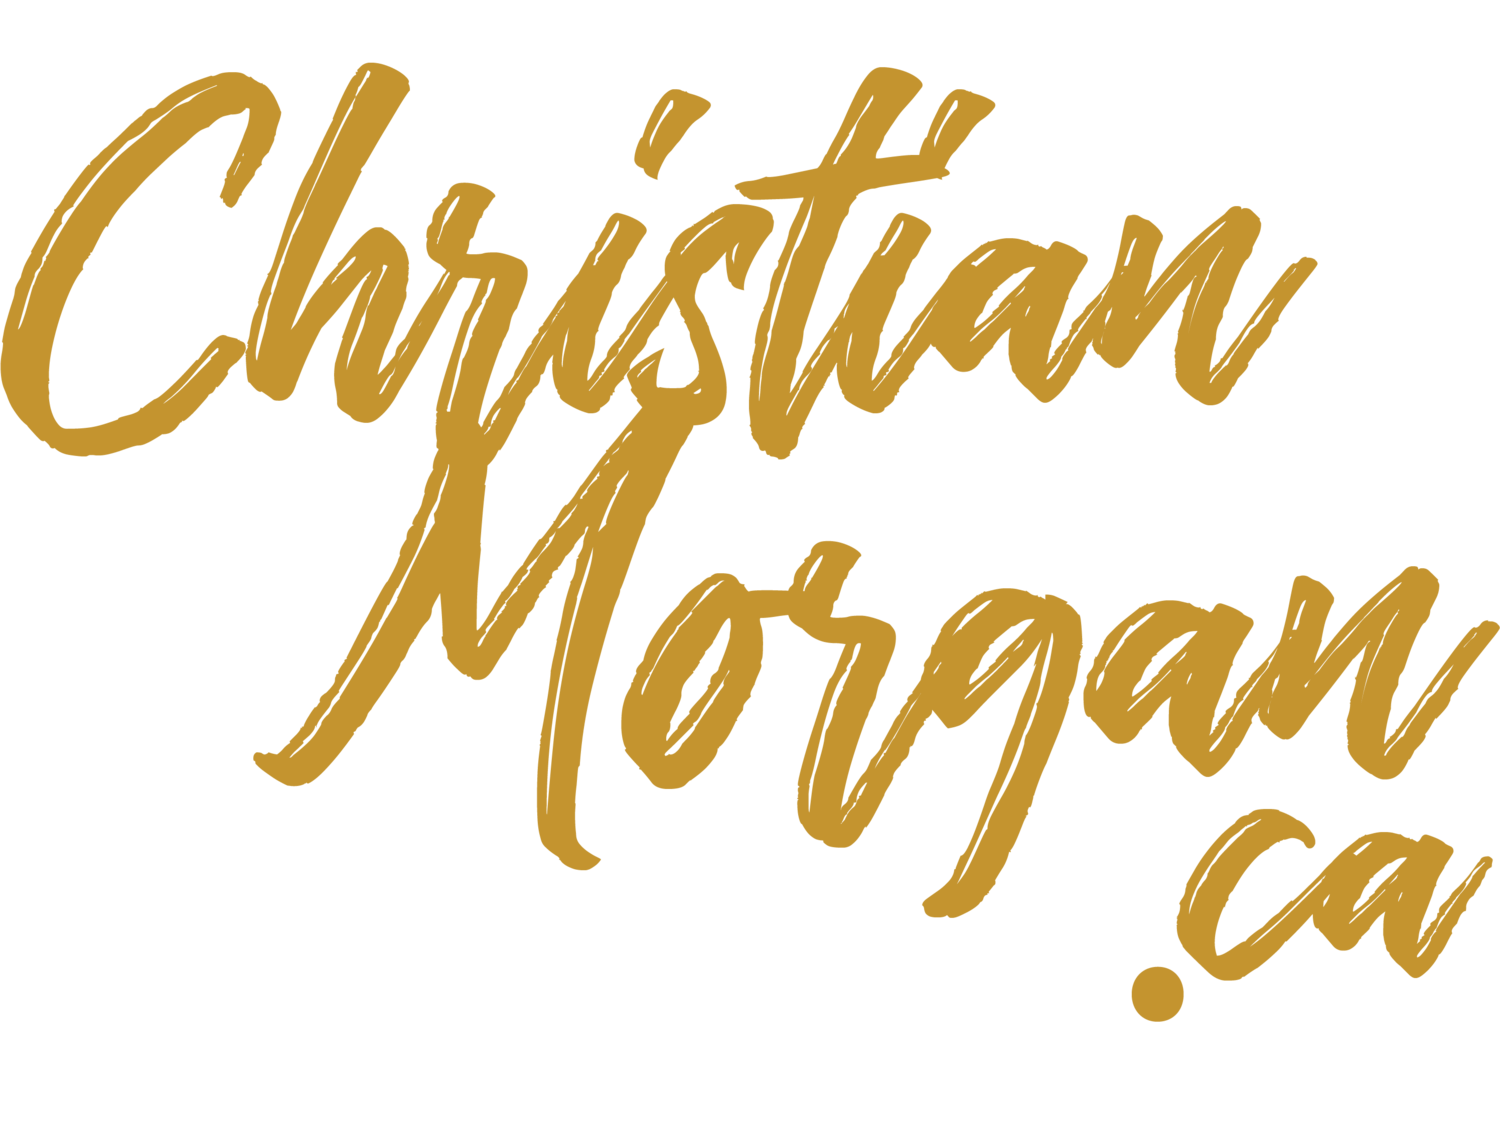 Christian Morgan